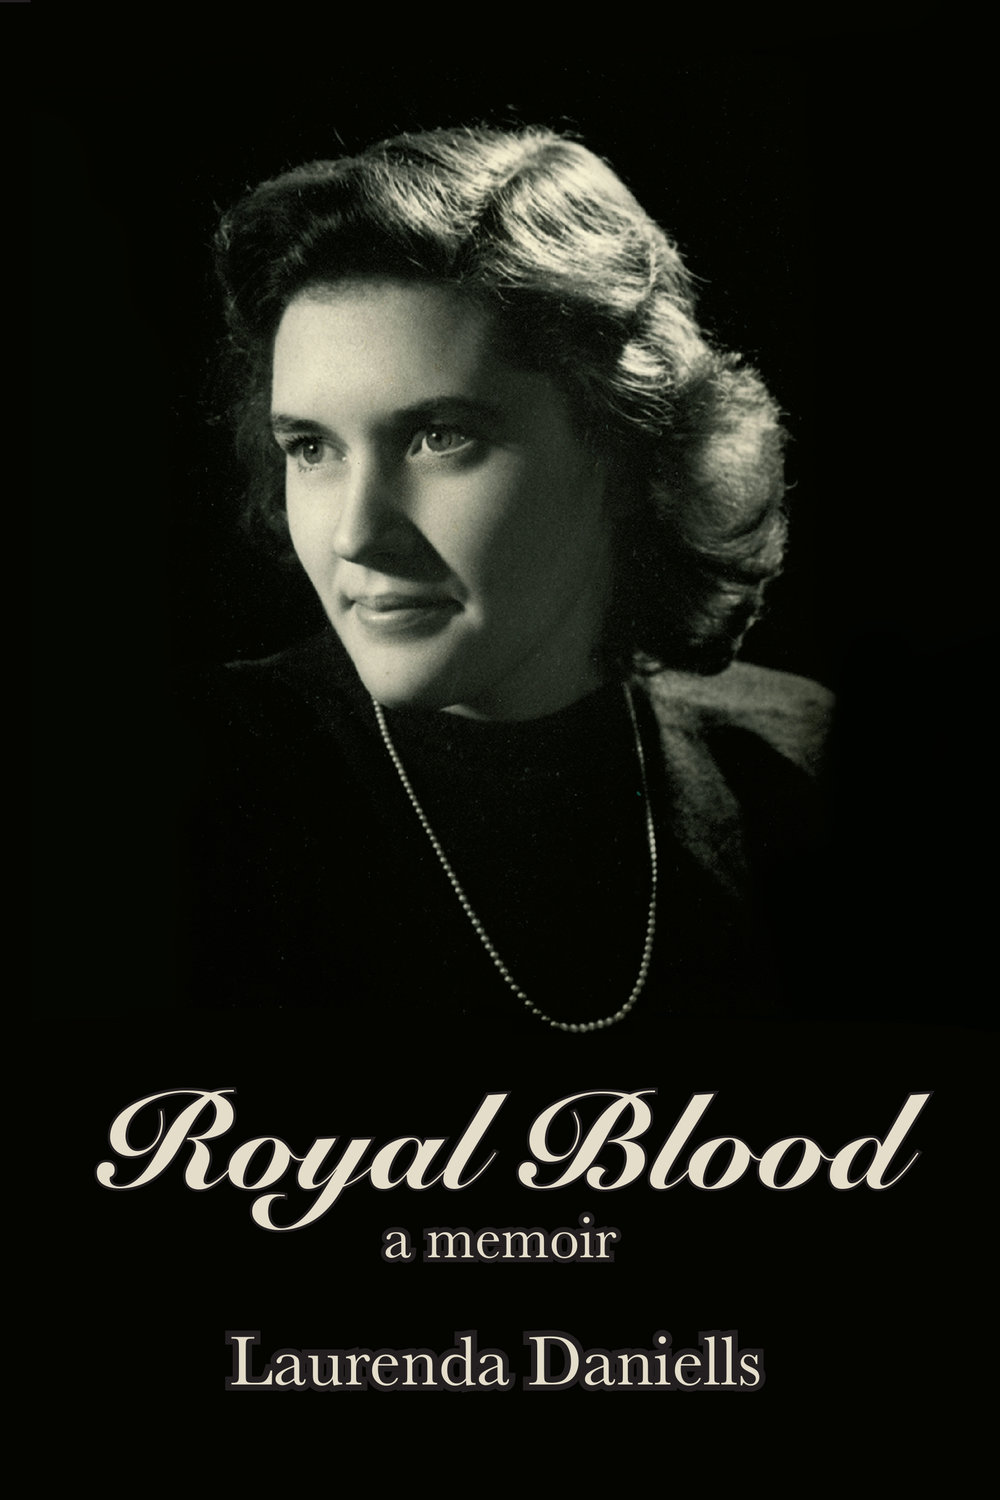 Royal Blood  by Laurenda Daniells, published June 2016